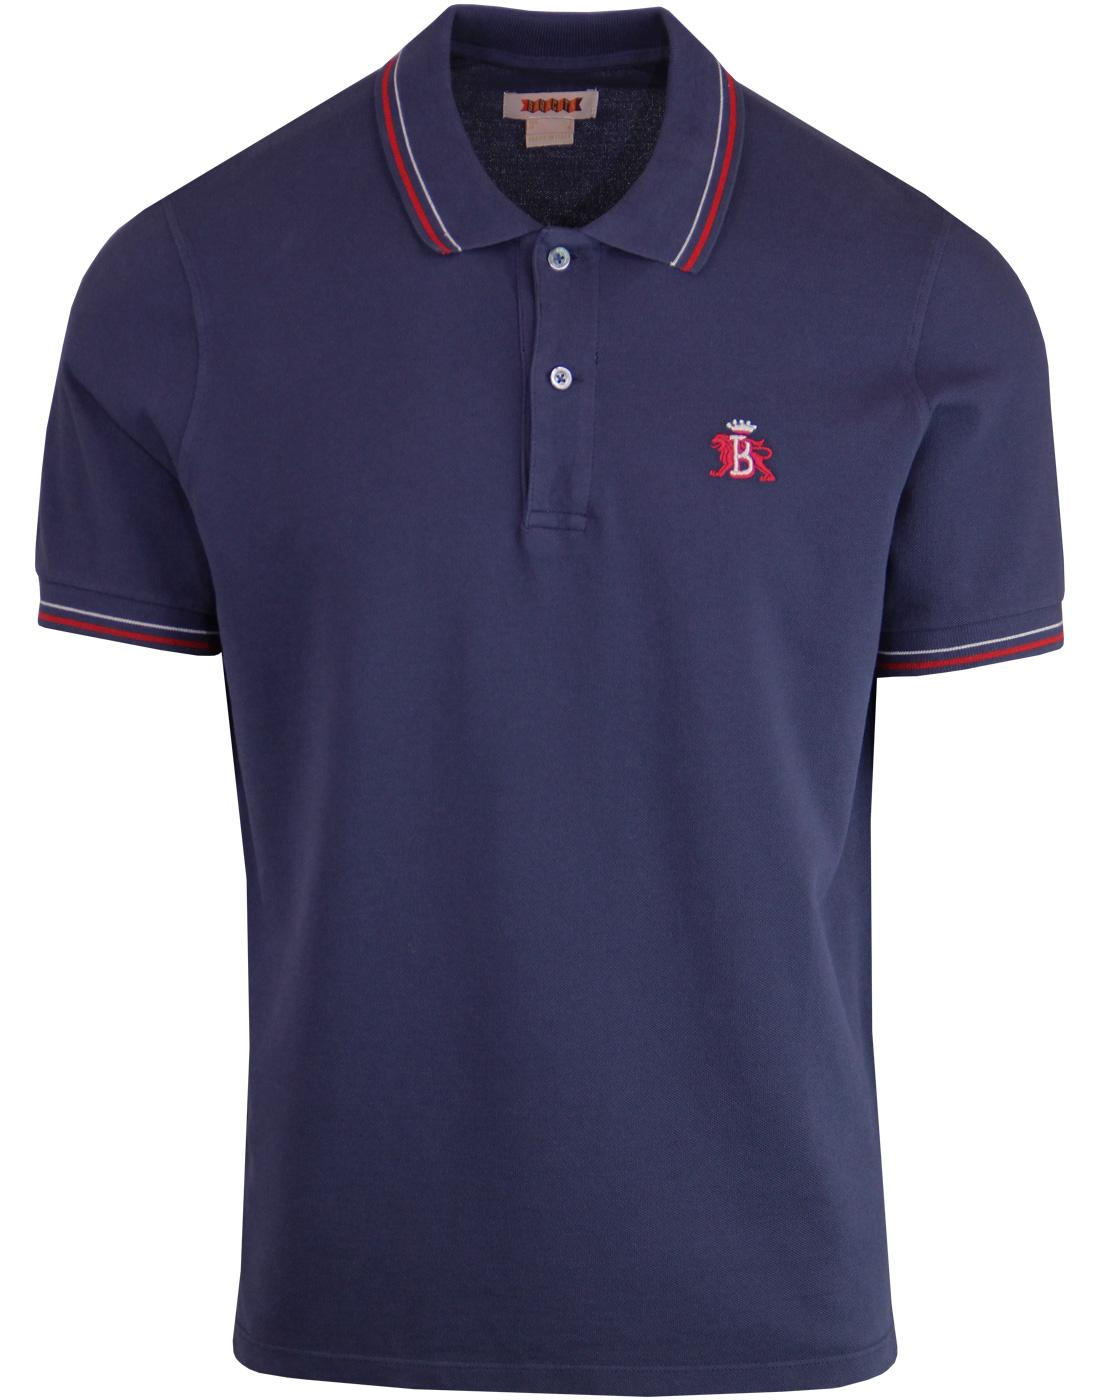 BARACUTA Made in Italy Tipped Varsity Pique Polo N